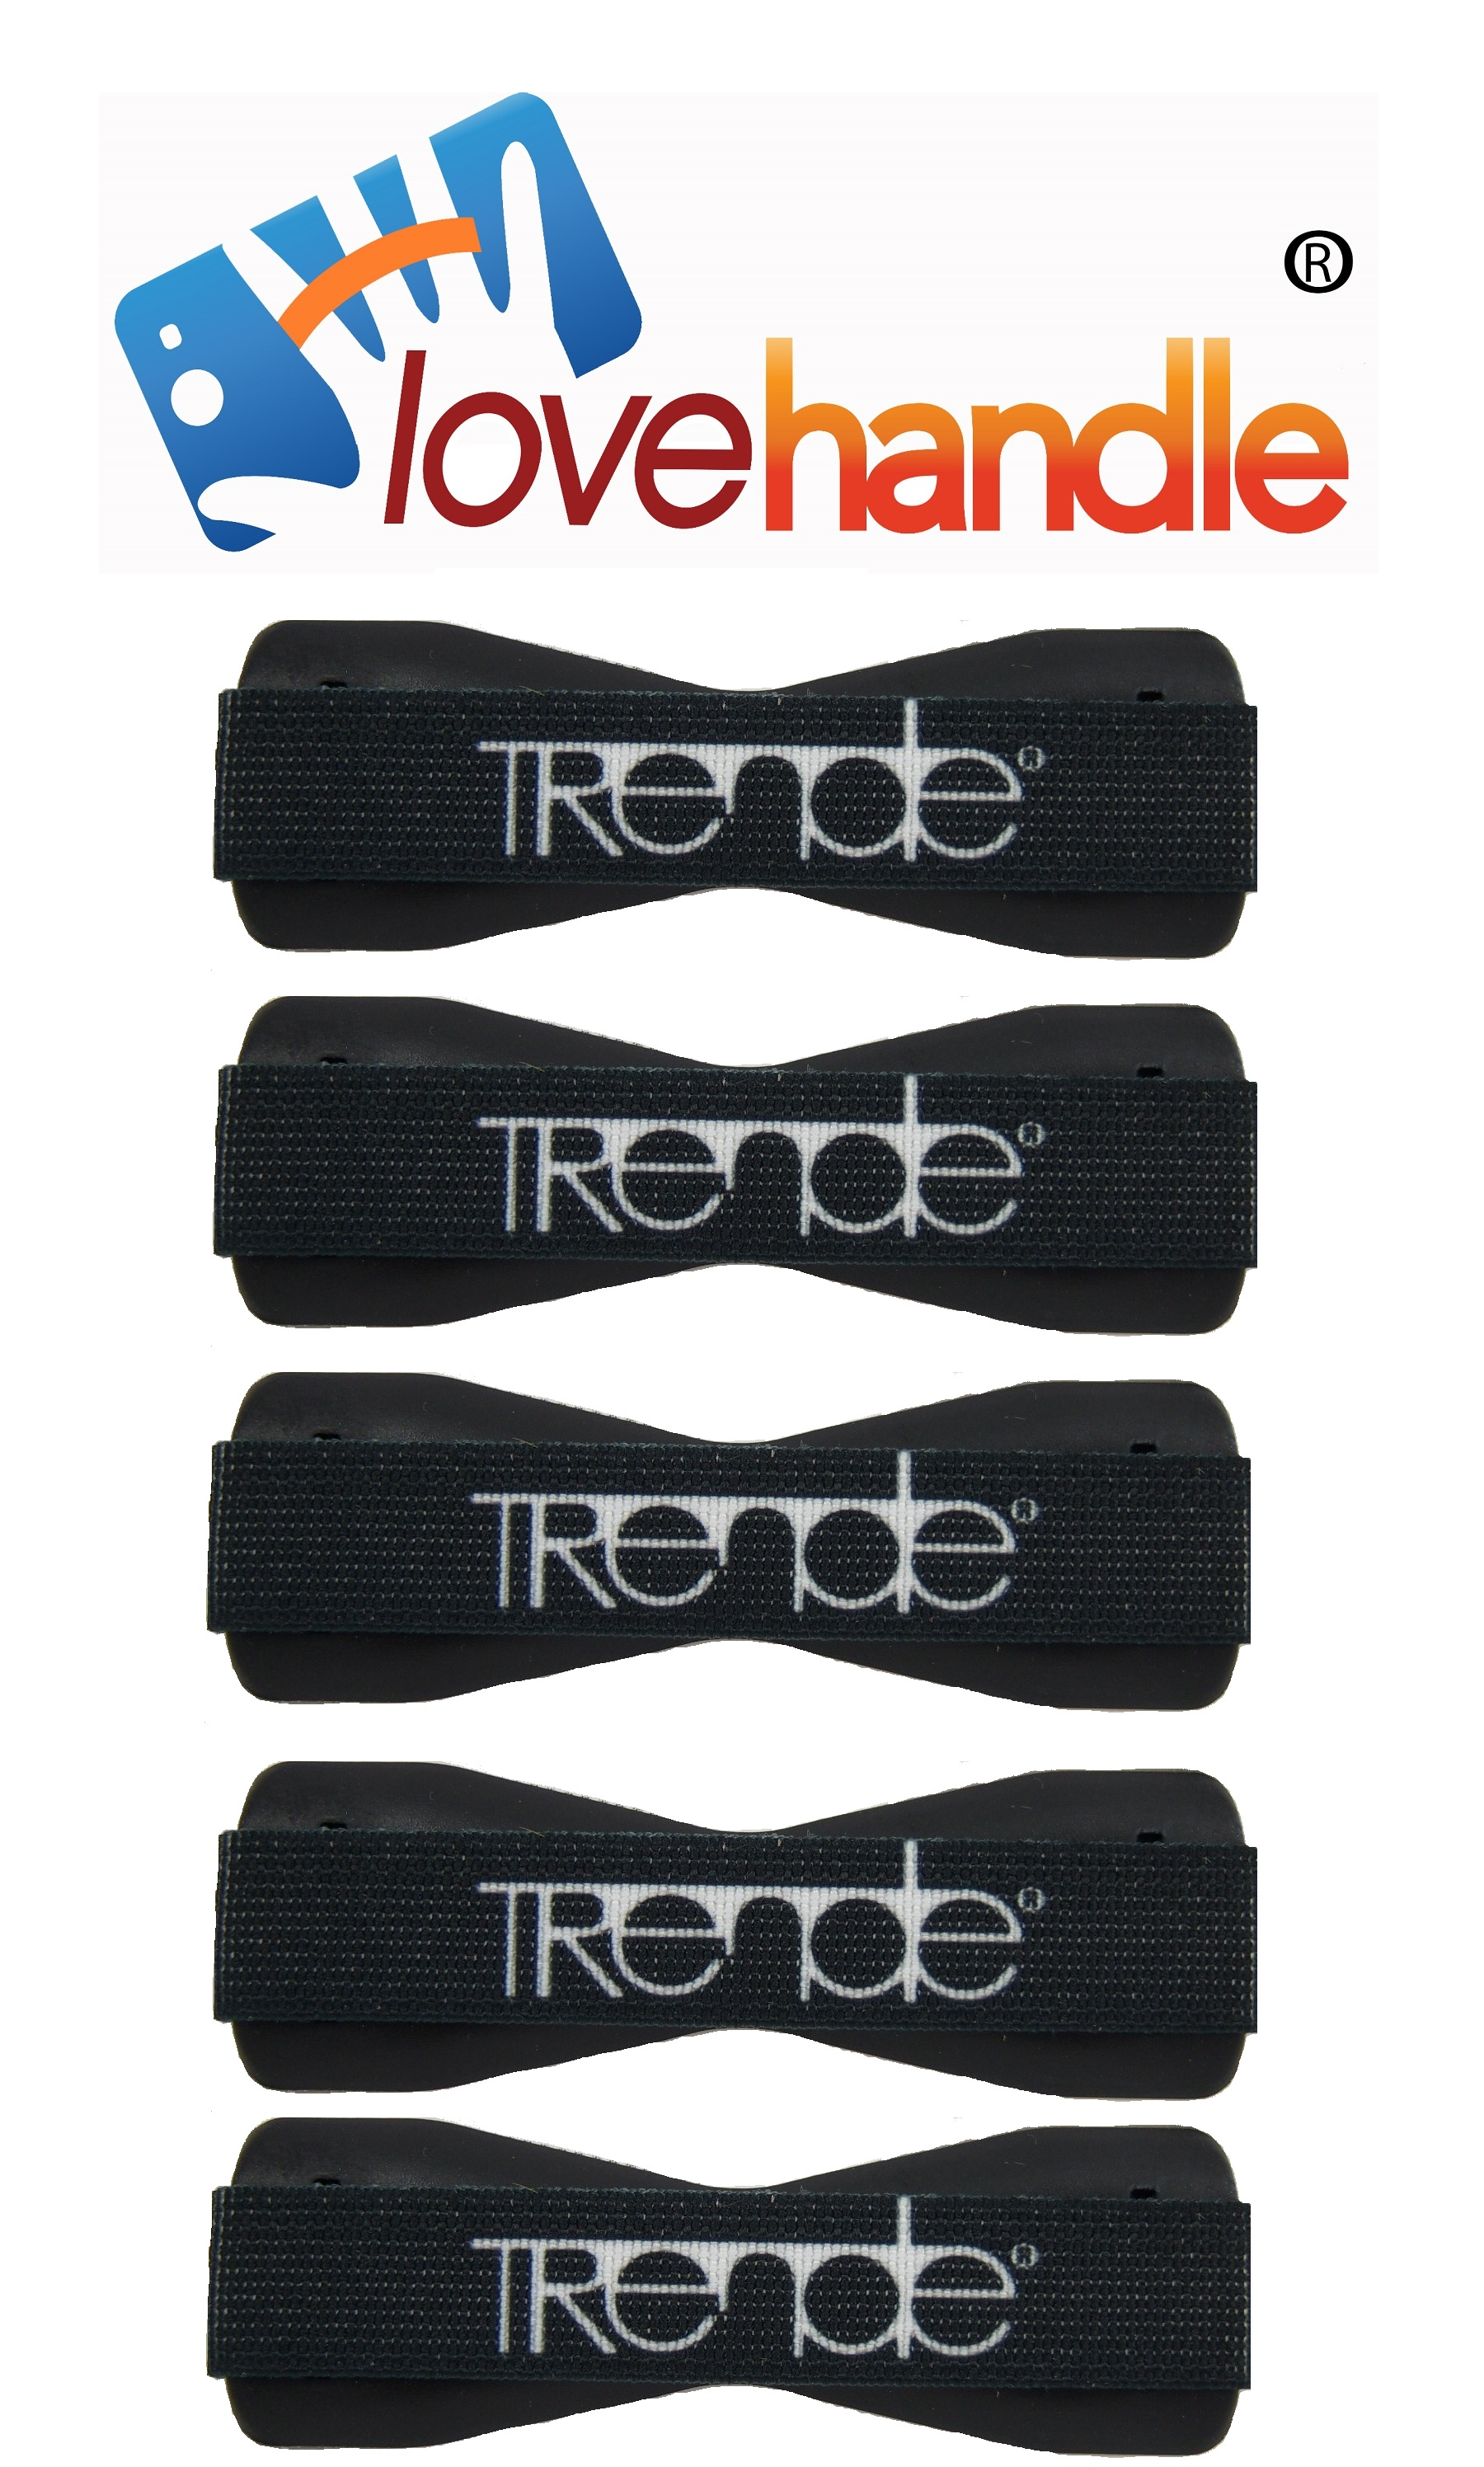 LoveHandle (originally SlingGrip) Value Pack 5 White TRENDE on Black Base - Sling Grip As Seen On TV - Love Handle Unive